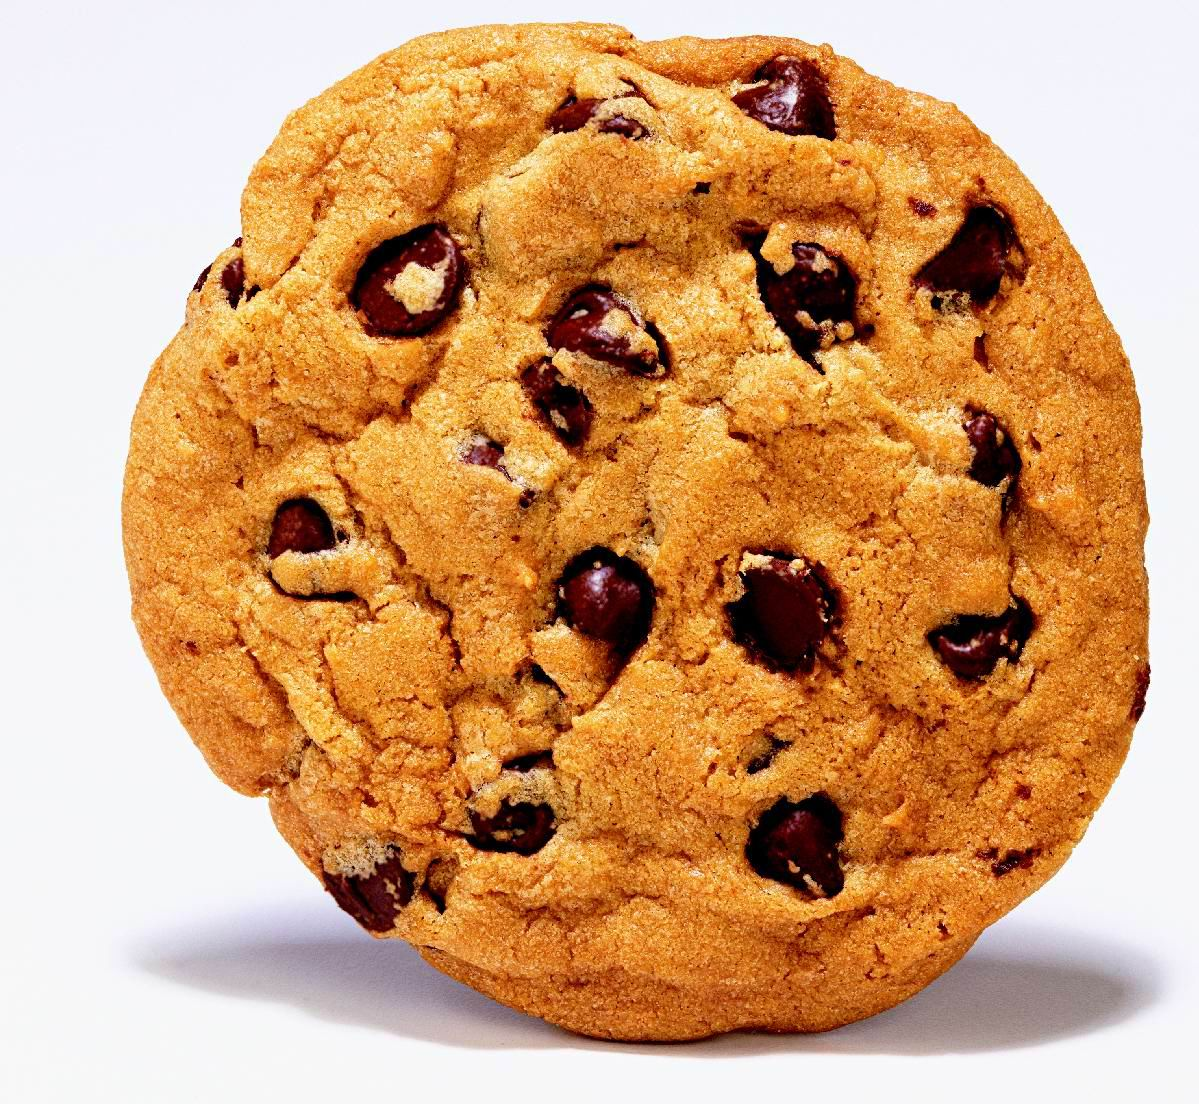 Chocolate Chip Cookie | Free Images at Clker.com - vector clip art ...